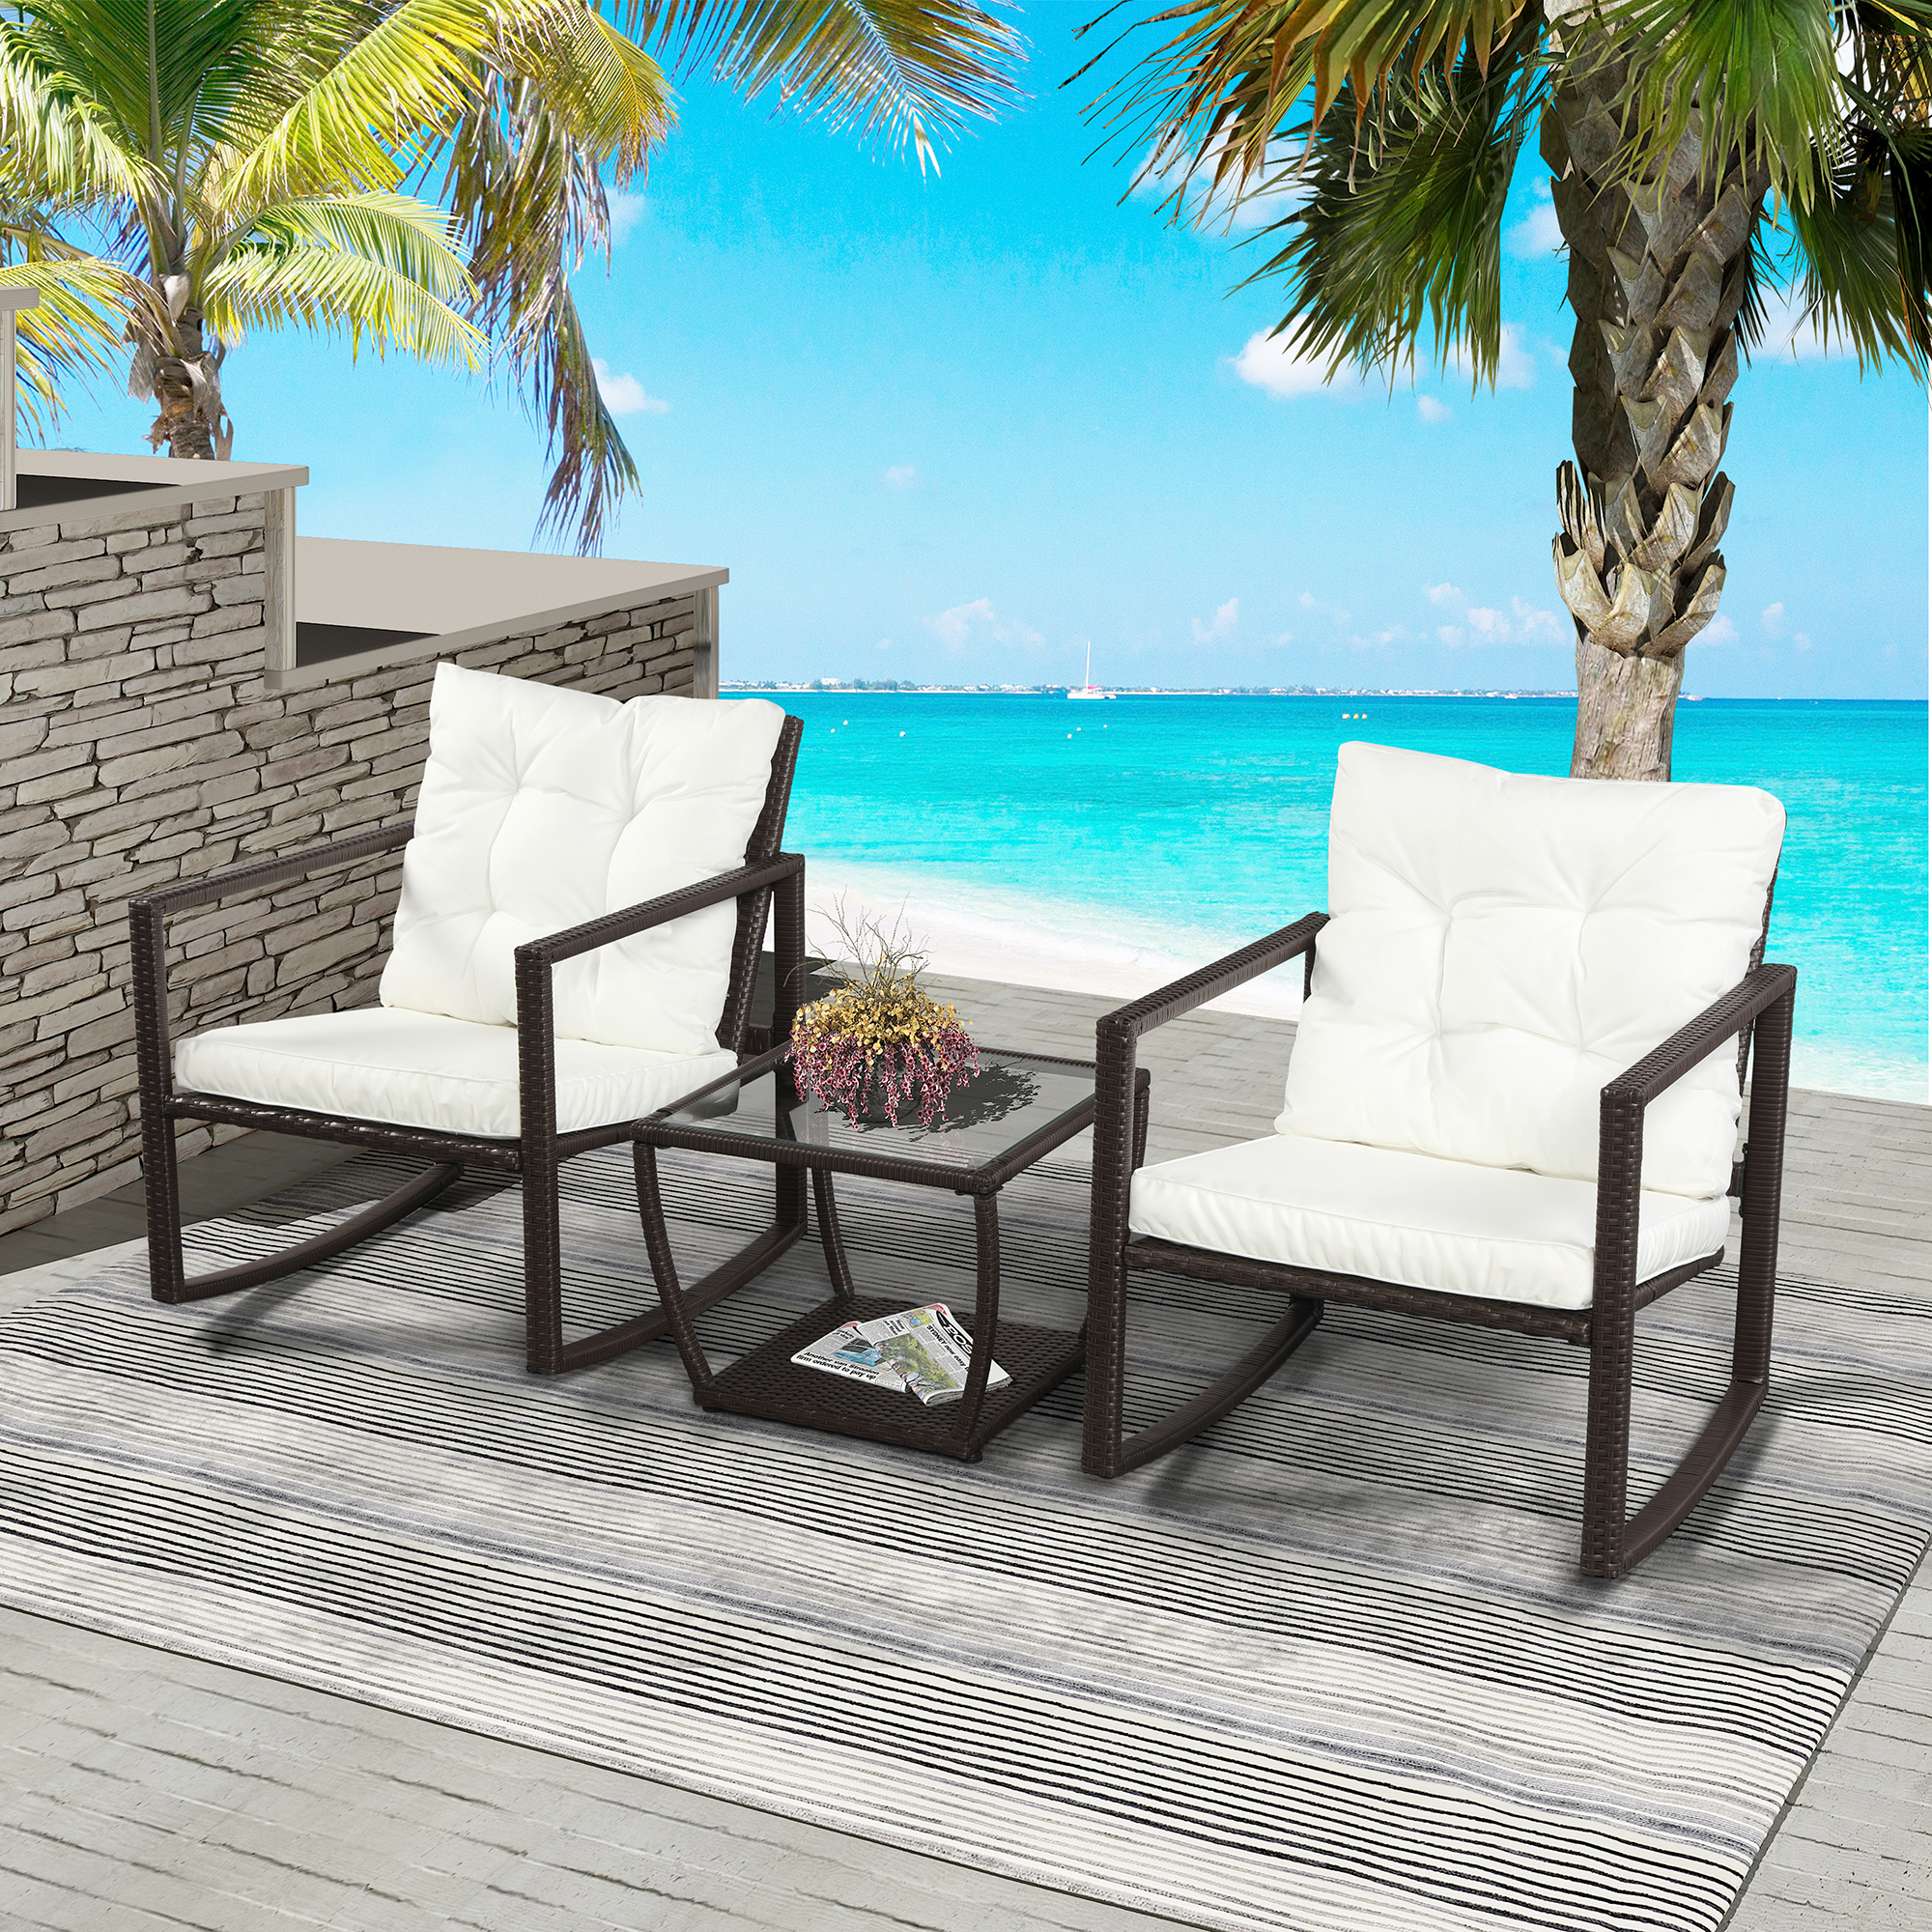 XIZZI Bistro Set Outdoor 3 Piece,Rocking Chair Patio Furniture with Glass Table and 2 Pillows Blue2